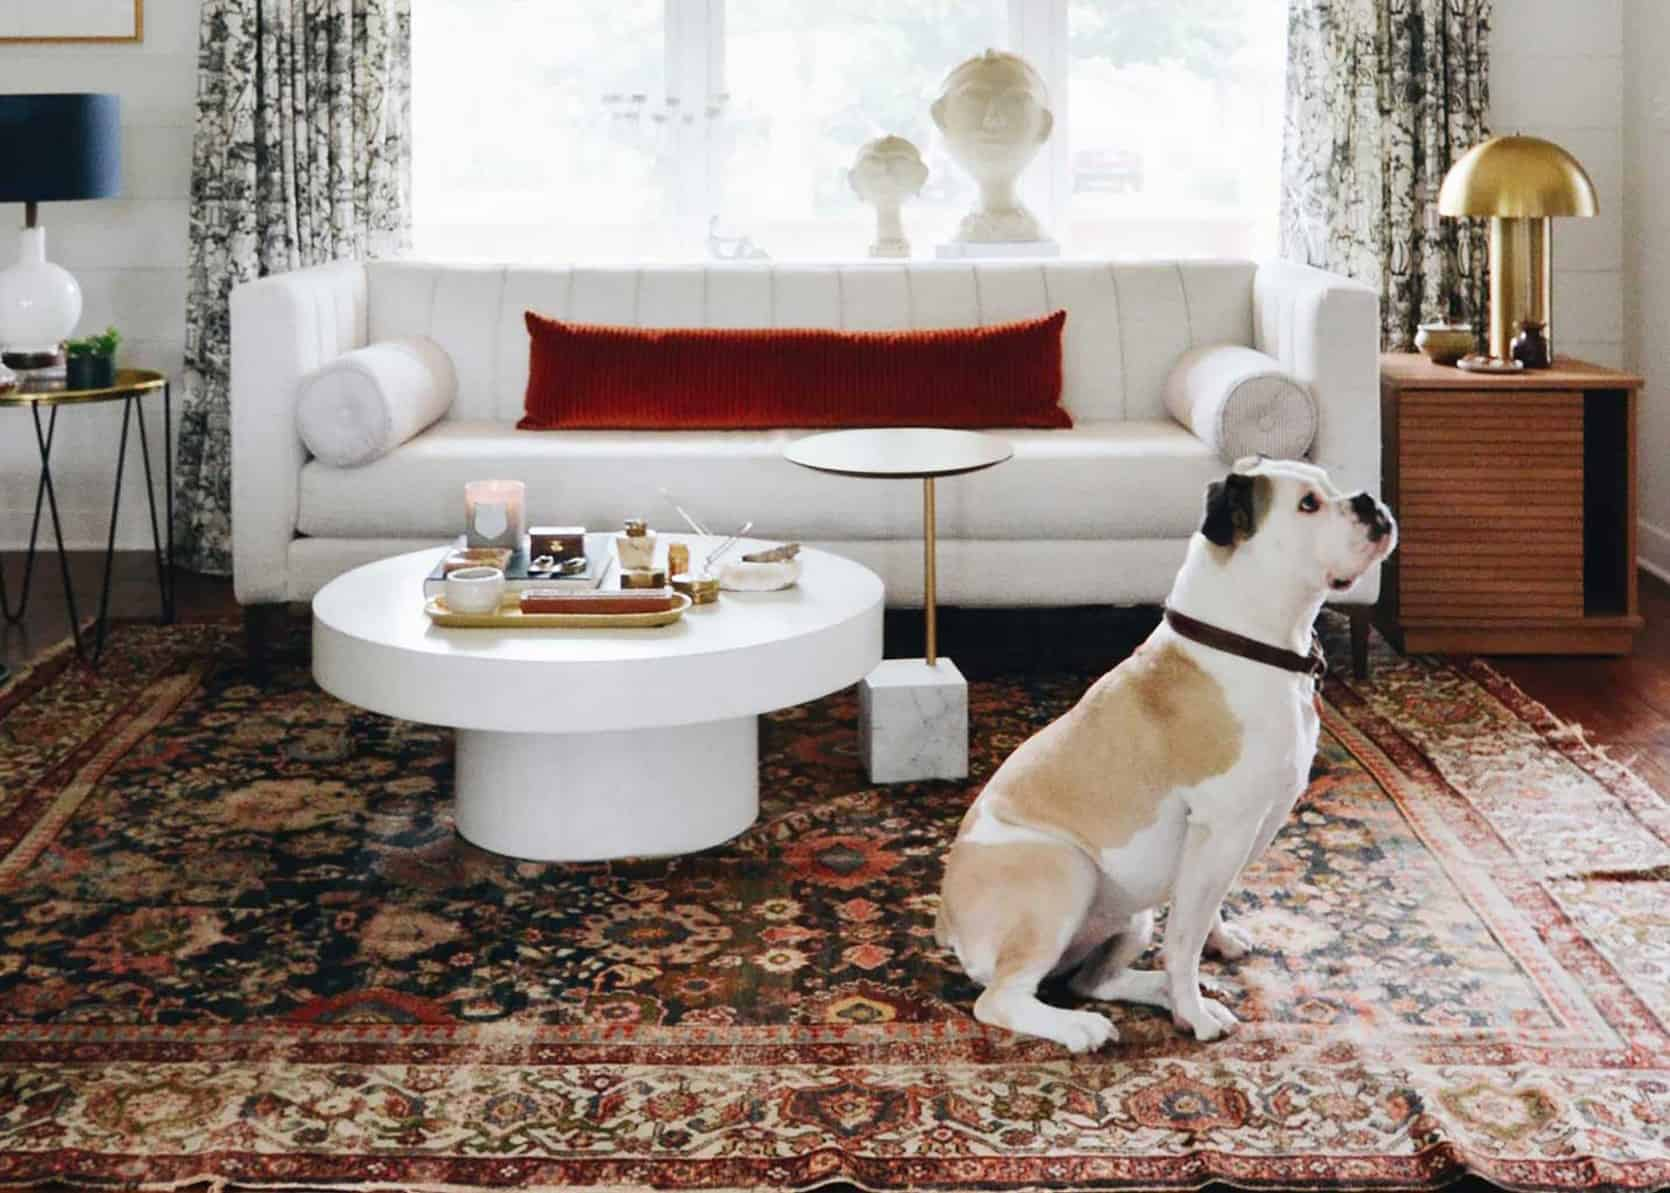 Does Your Home And Pup Want Cuter But Practical Accessories We Ve Got You Covered Emily Henderson